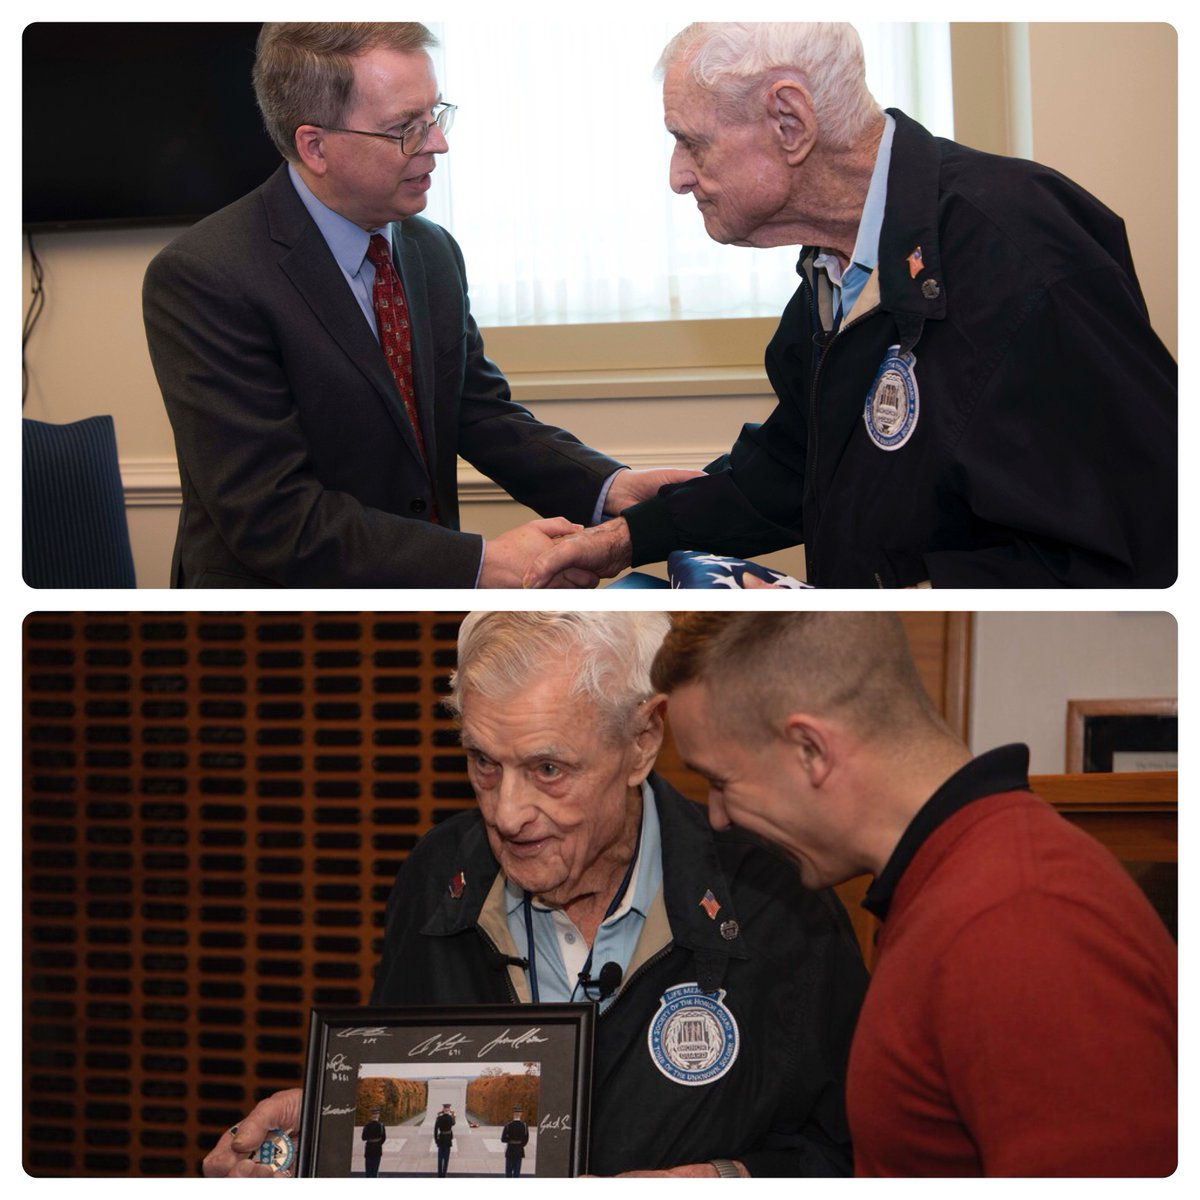 I was honored to welcome retired @USArmy SSG Jack Eaton to the Pentagon for the first time. At 100-years-young, Mr. Eaton served during WWII & is the oldest living Tomb of the Unknown Soldier Sentinel, serving as one of the guards that have kept watch over the tomb 24/7.